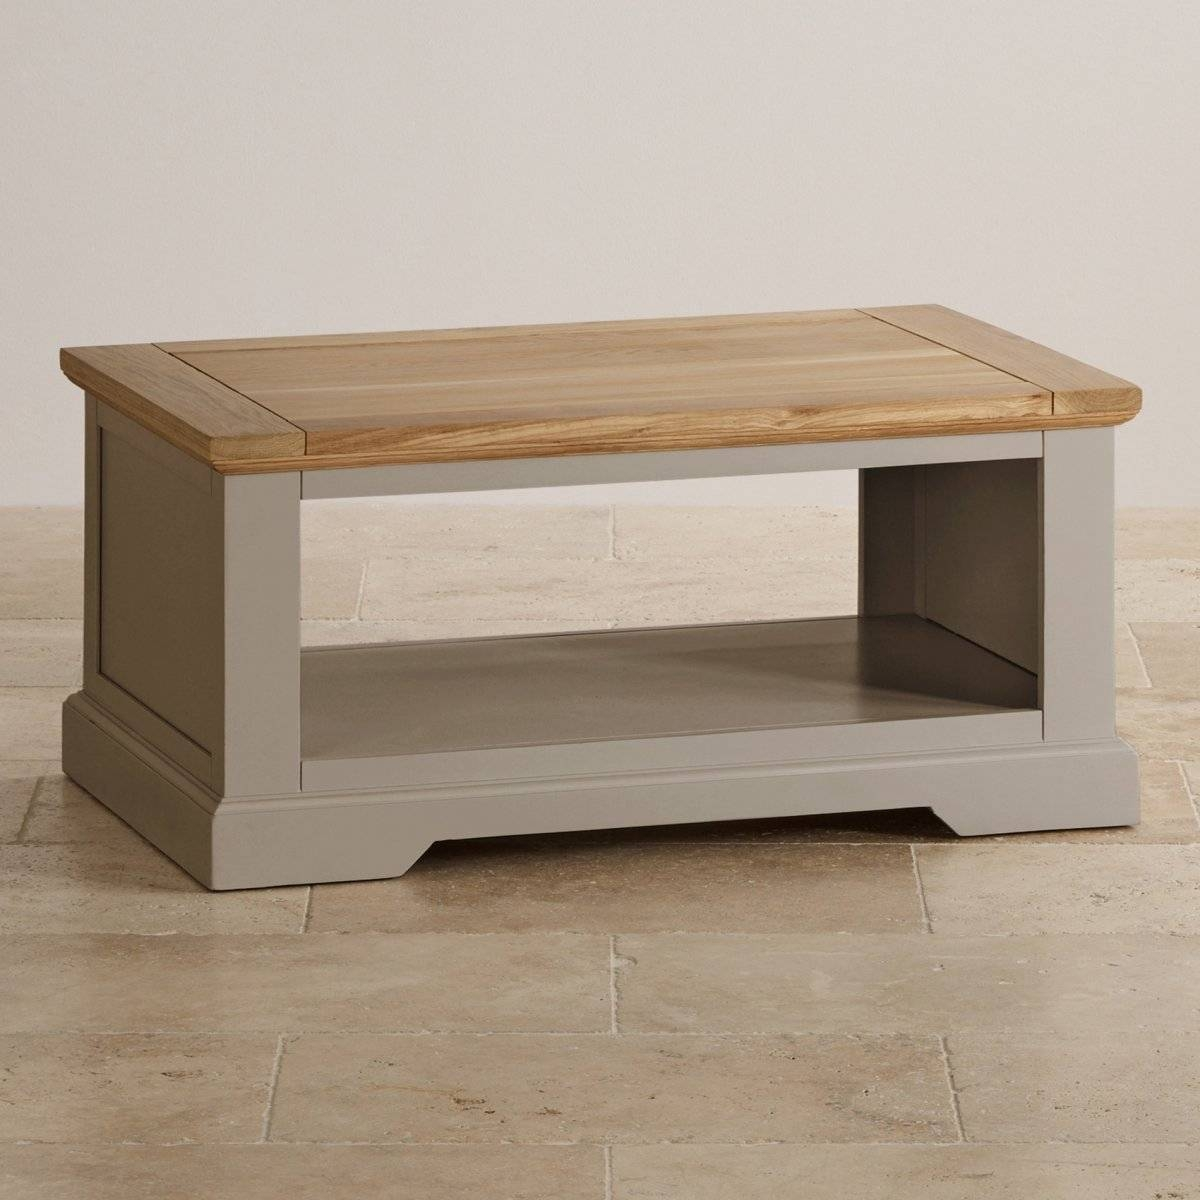 Coffee Tables | Free Delivery Available | Oak Furniture Land intended for Oak Wood Coffee Tables (Image 4 of 15)